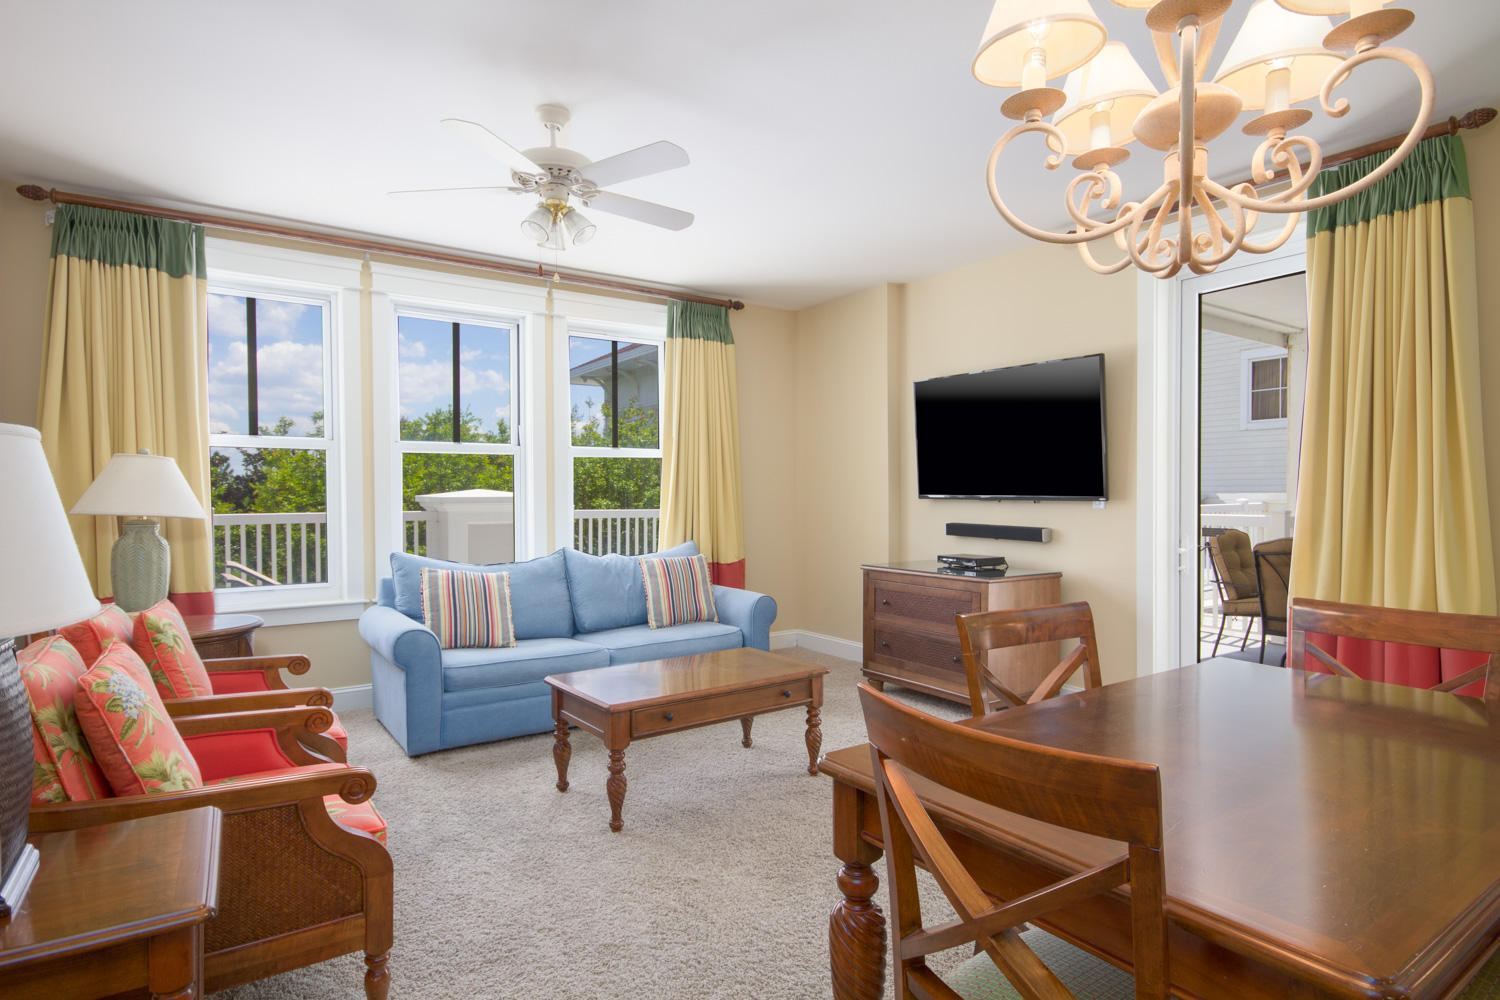 This corner condo with an oversized balcony is perfectly situated steps from the Baytowne Conference Center and activities of The Village of Baytowne Wharf. The prime corner location provides an abundance of windows allowing the sunshine to flood in and embraces the essentials of a second home or vacation rental. The oversized balcony offers a perfect location for entertaining friends and family or simply soaking up the warm Florida sun. Grand Sandestin amenities include a gated underground parking garage, lagoon-shaped pool with kid-friendly sloped entry, hot tub, children's pool, and fitness center on first floor. You're only a quick golf cart ride or shuttle to the beach and the amenities Sandestin Resort has to offer. Completely furnished, rental capable, and waiting for you to enjoy!